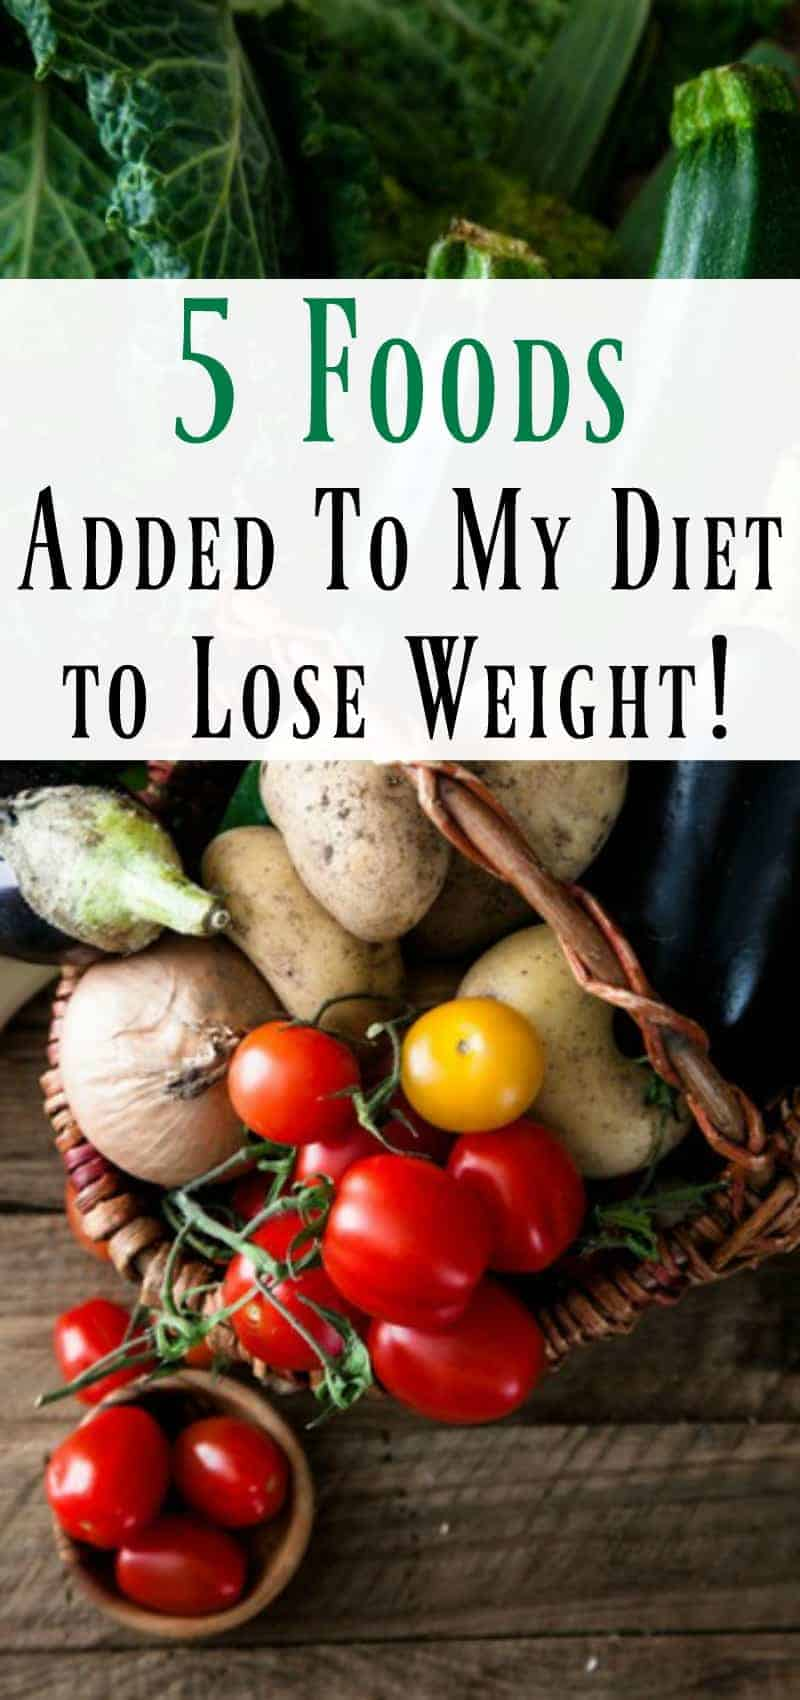 5 Foods I Added to My Diet to Lose Weight